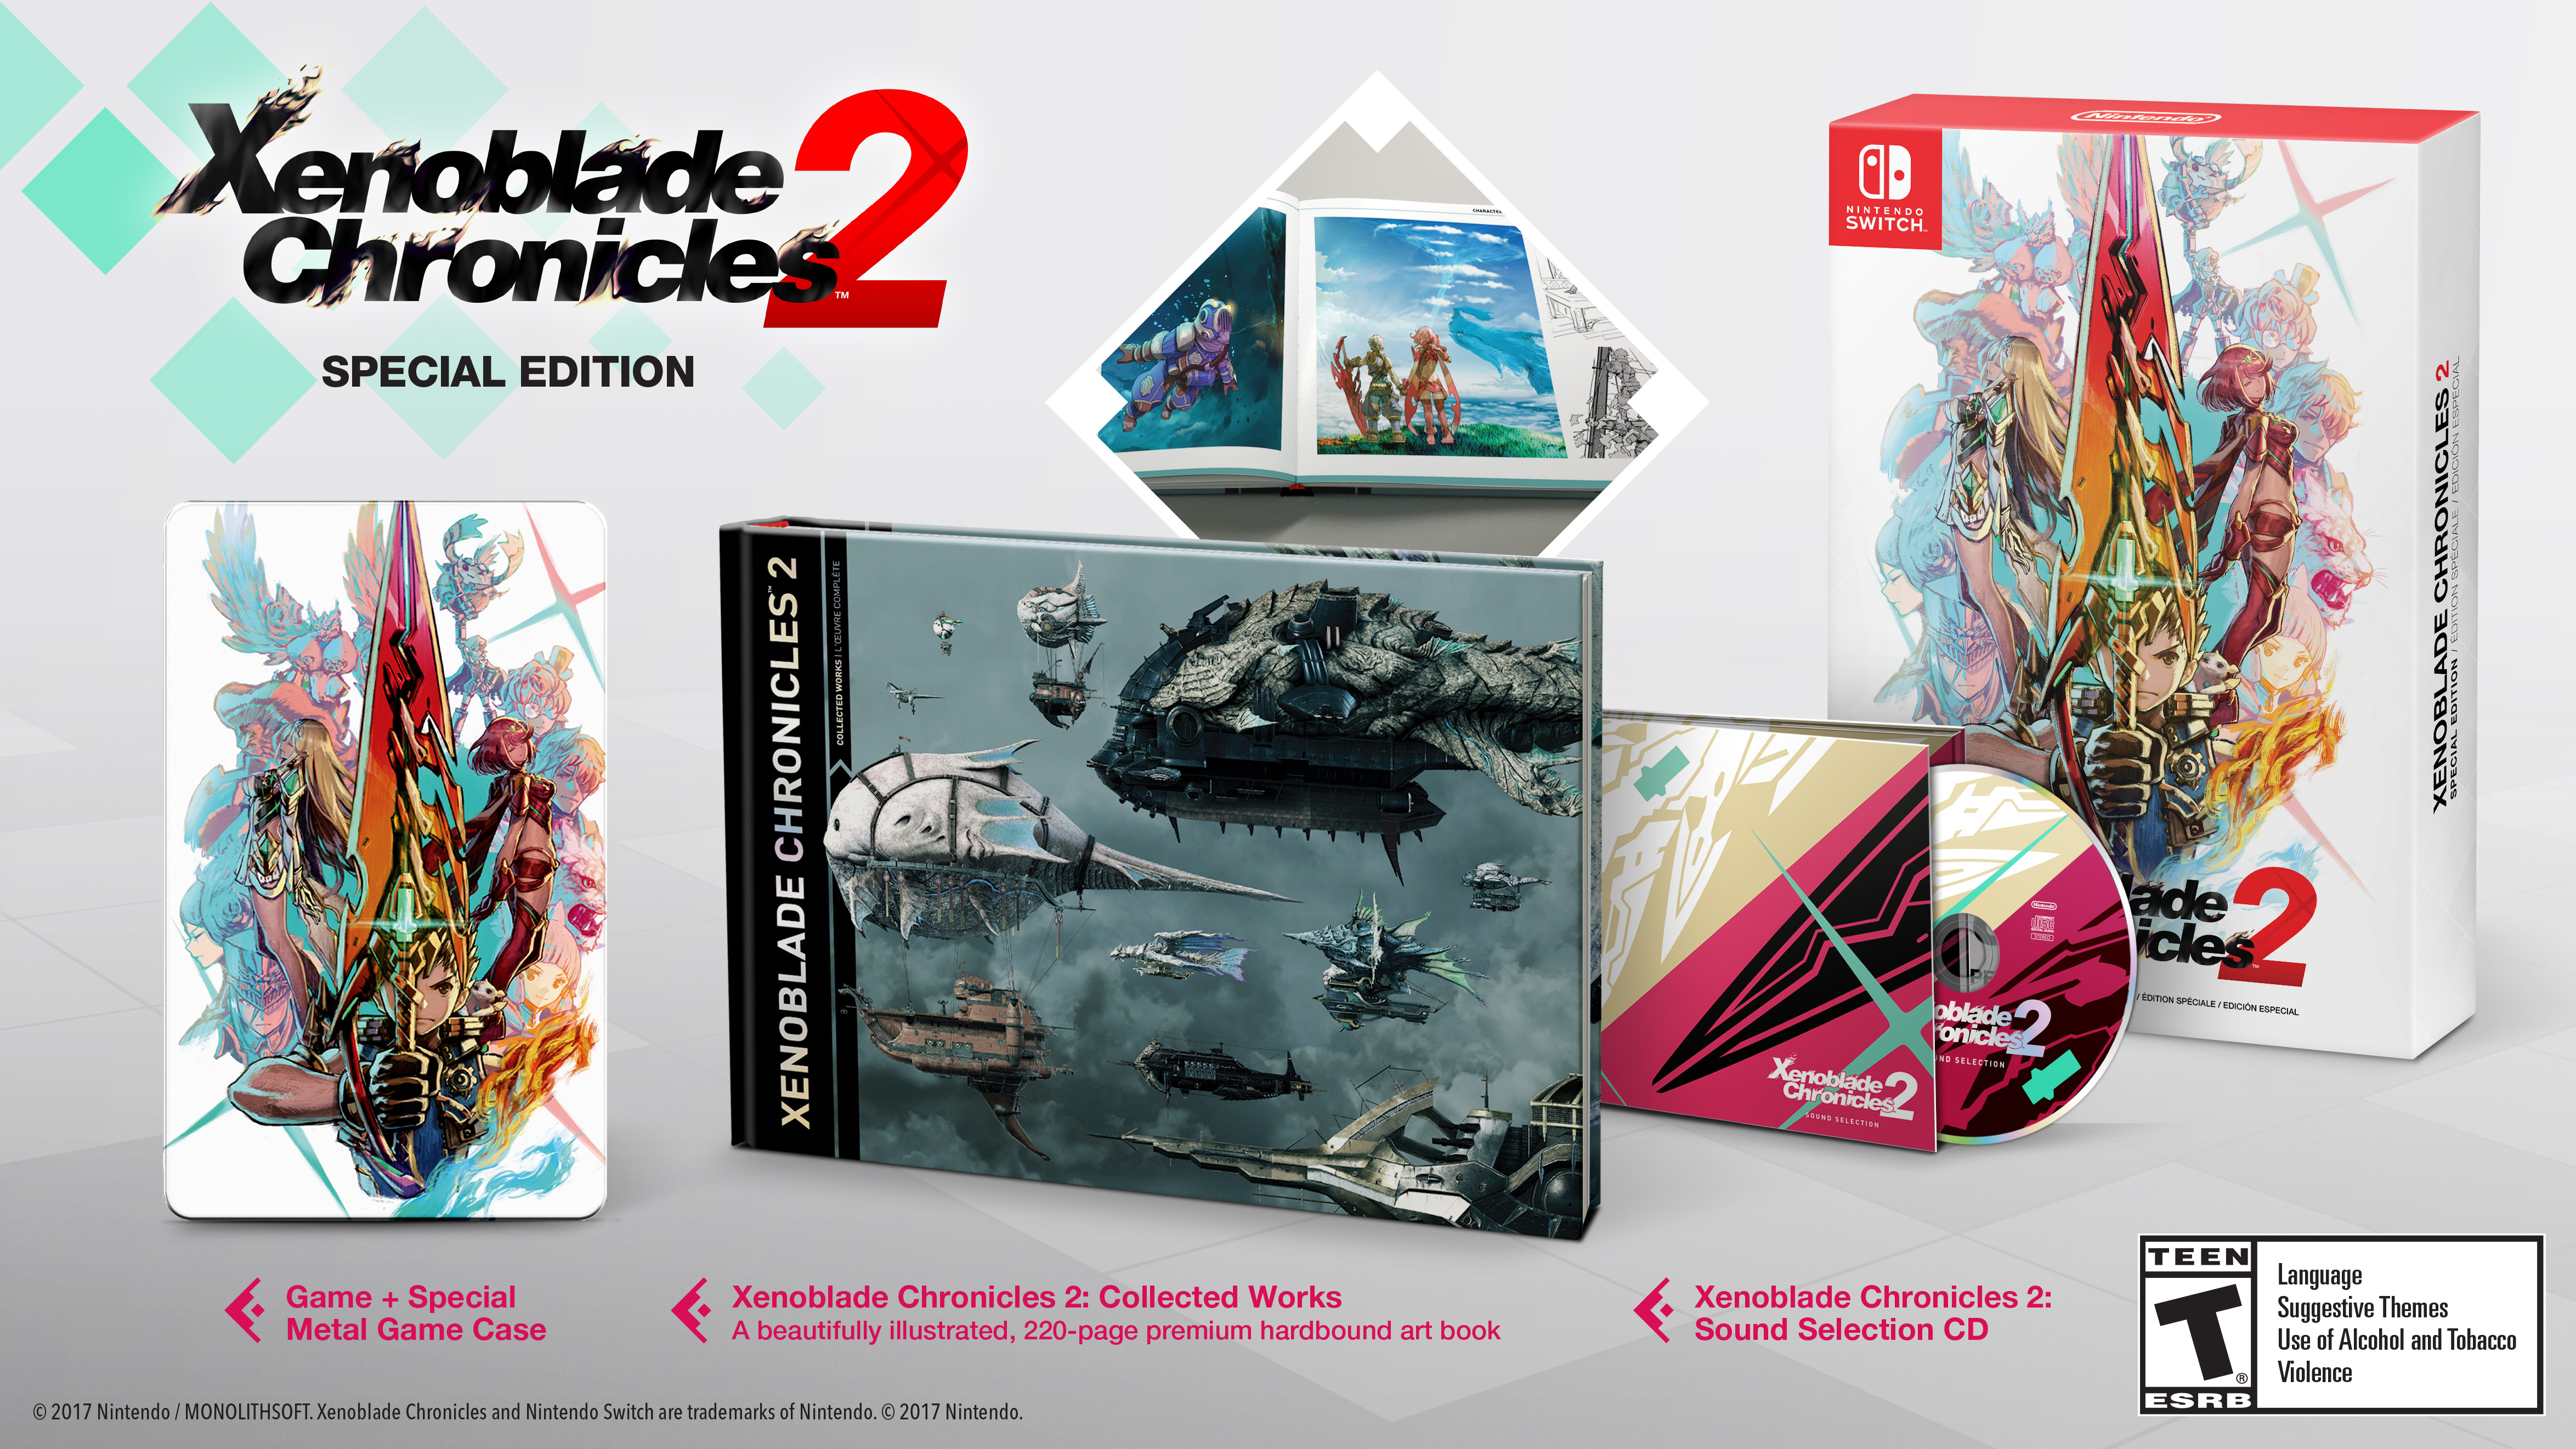 Xenoblade Chronicles 2 is out December 1st, and there's a